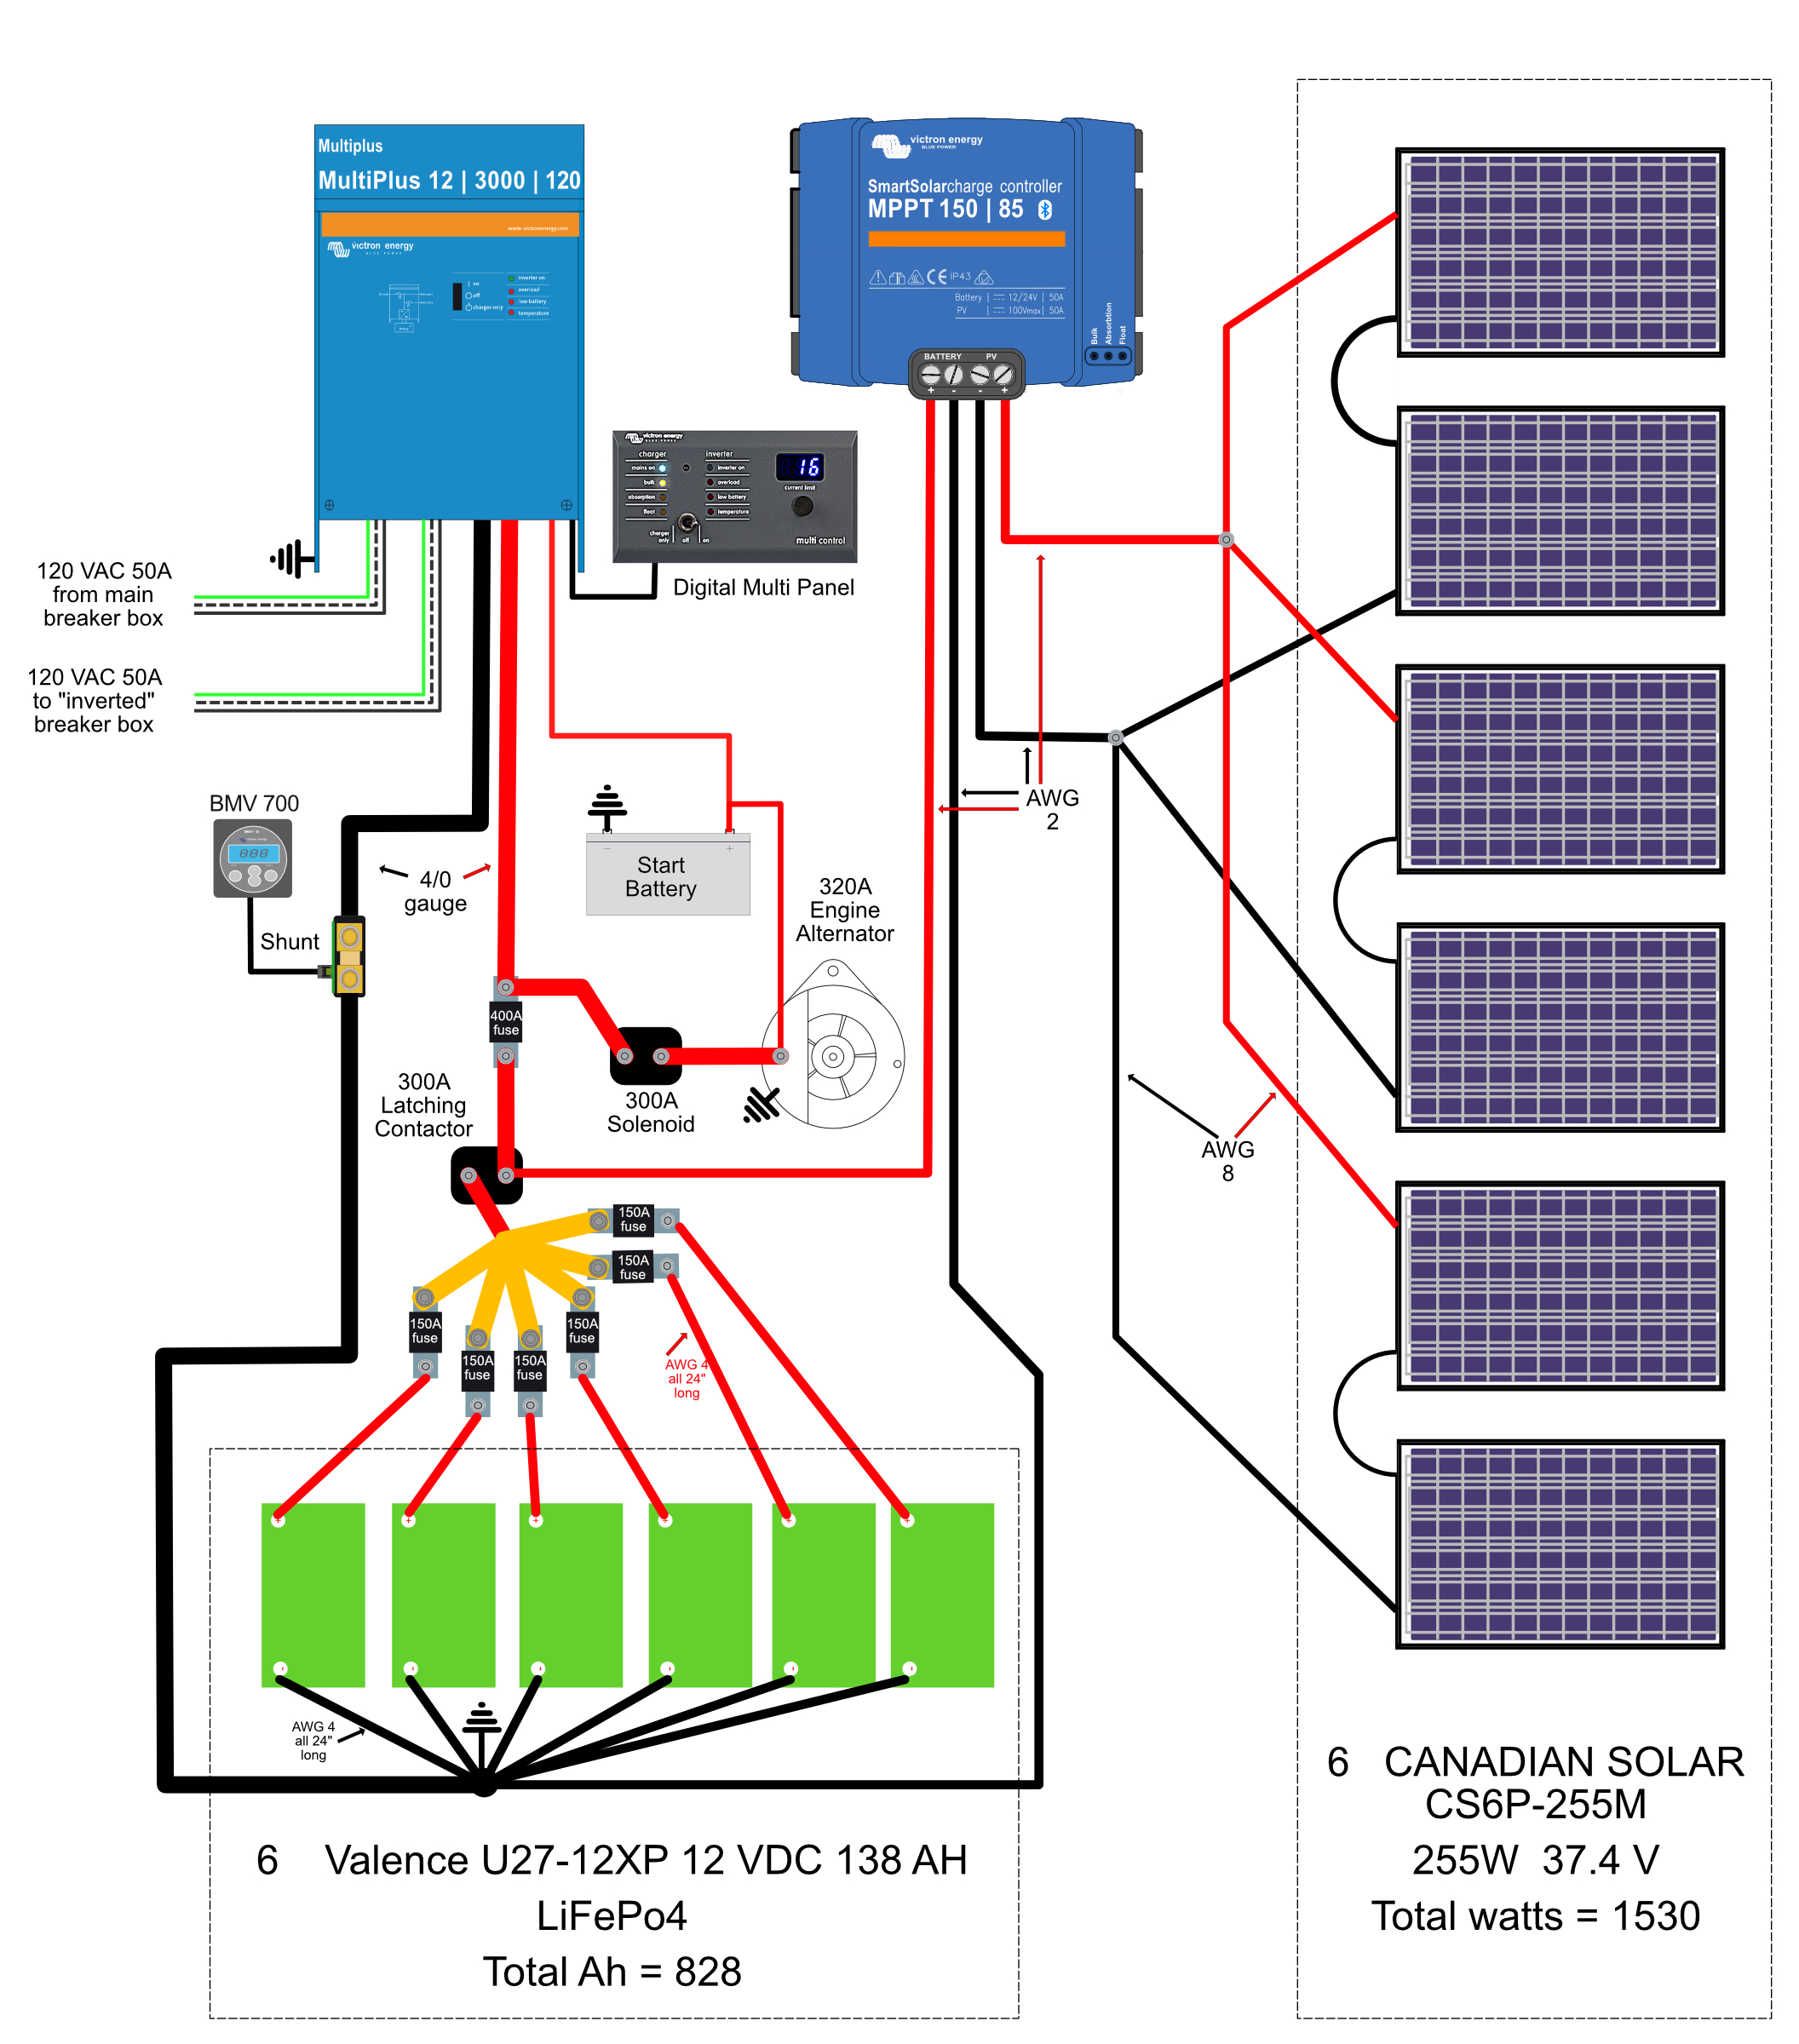 wiring diagram for converted bus. | diy solar power forum  diy solar power forum